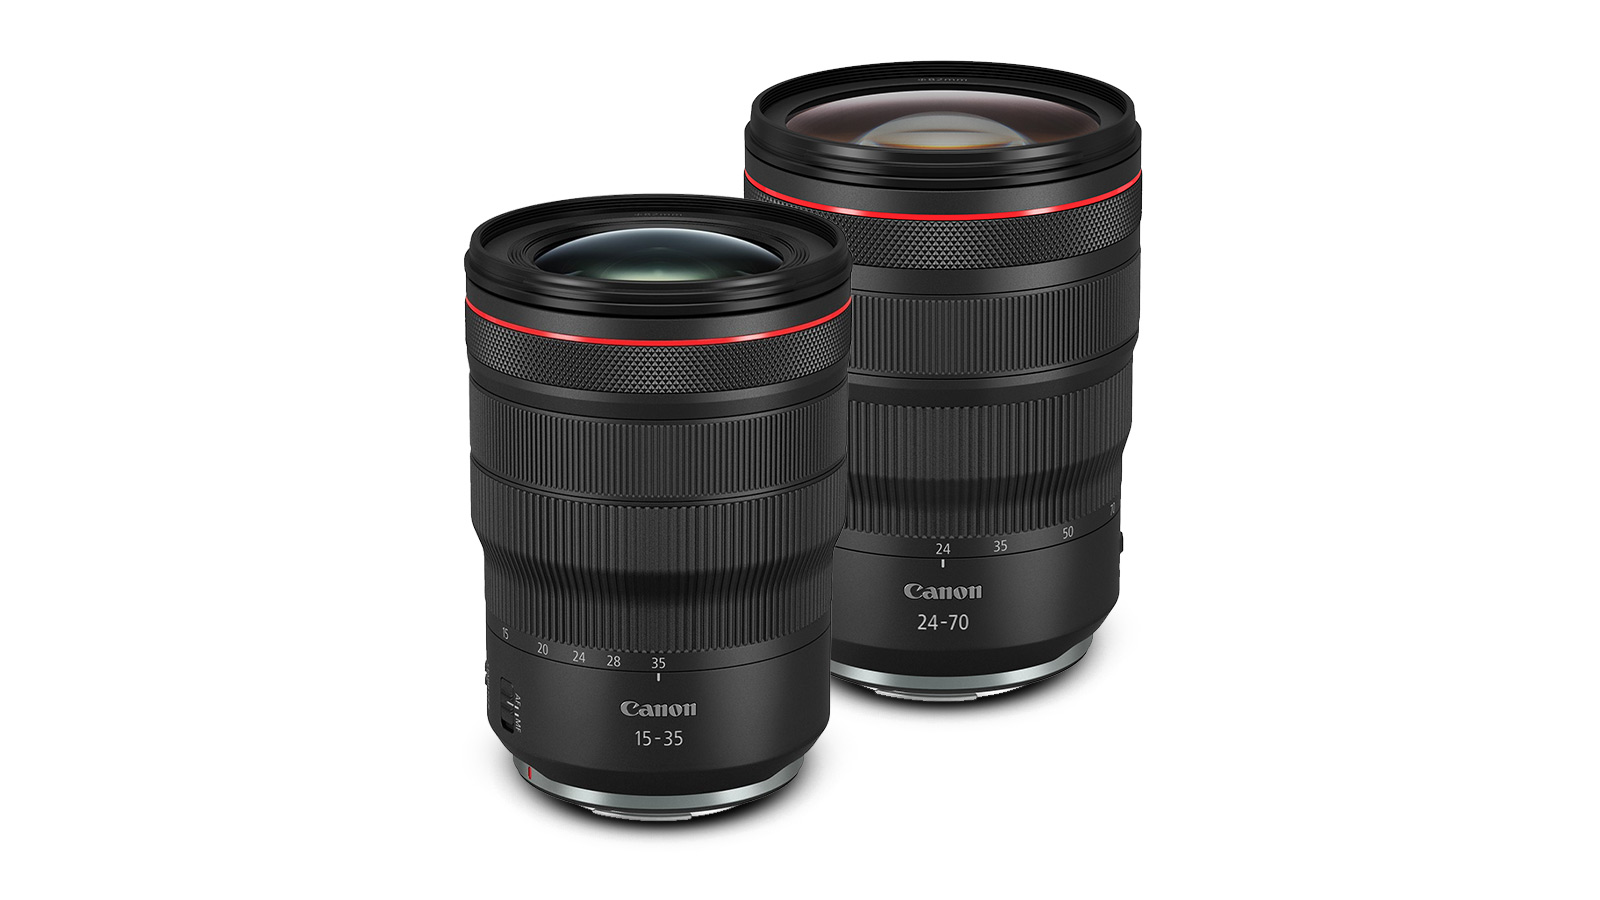 Canon Adds 15-35mm F2.8L, 24-70mm F2.8L to RF Lineup